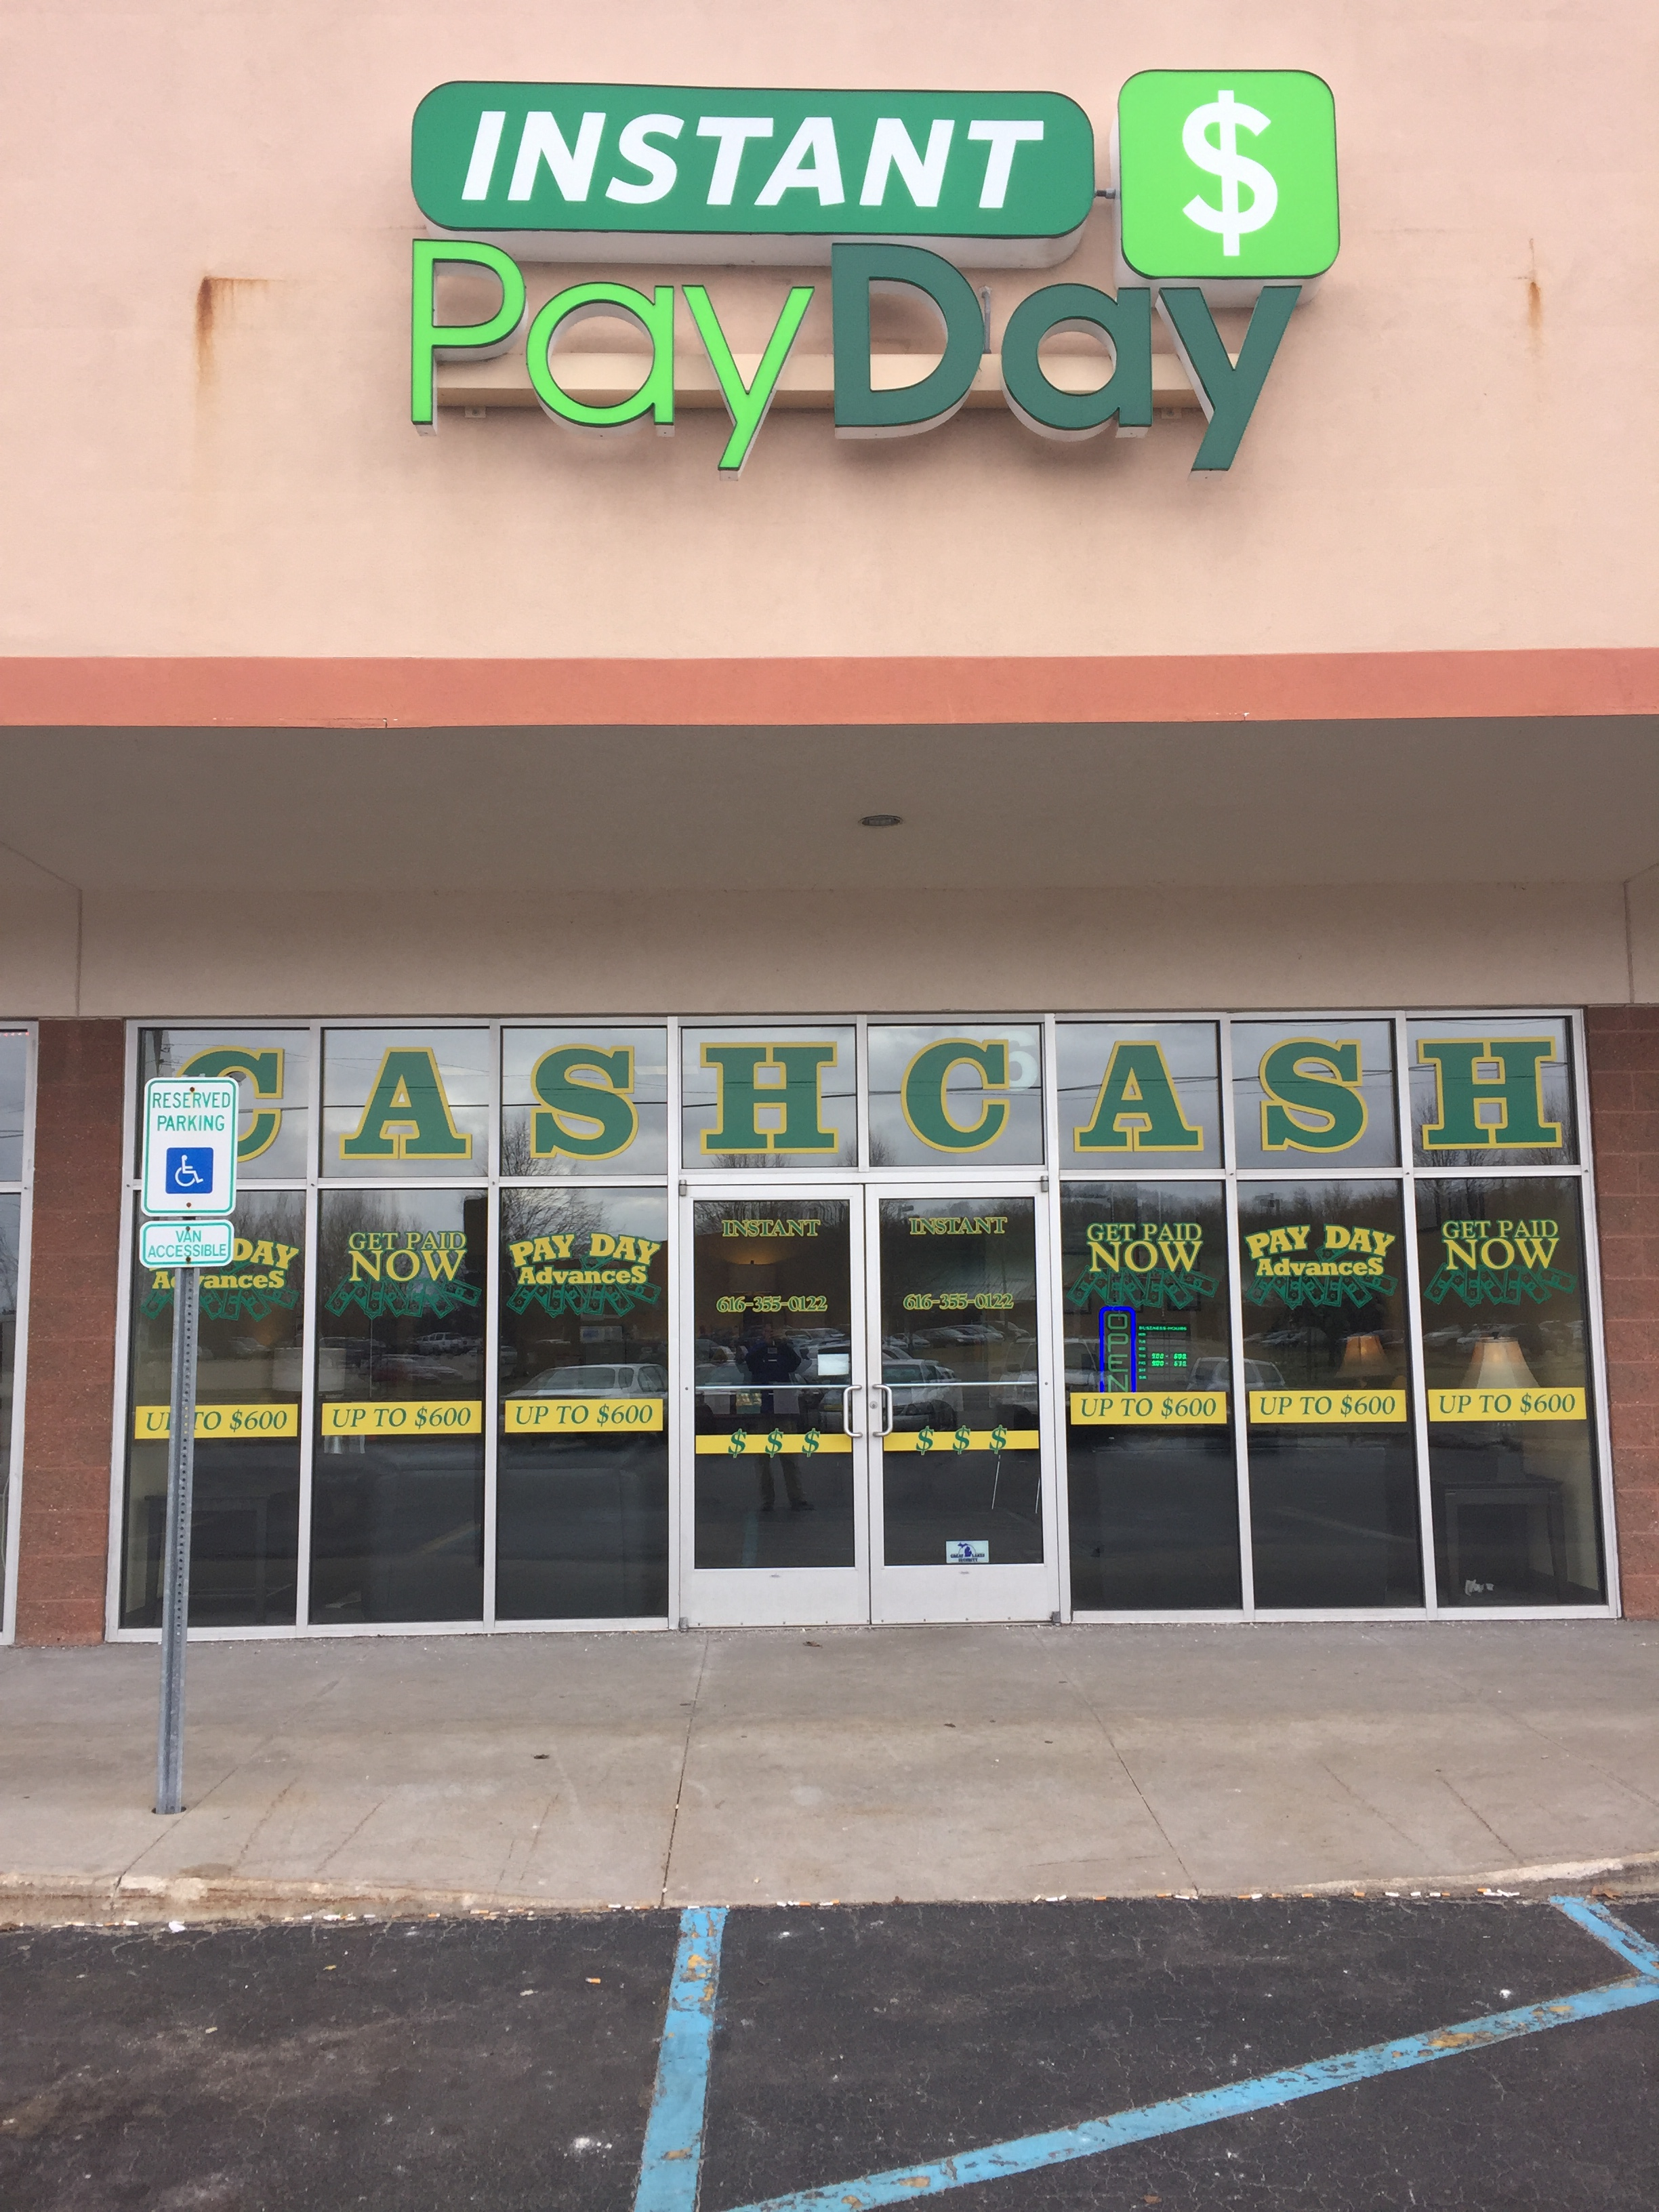 Cash loans decatur al picture 2